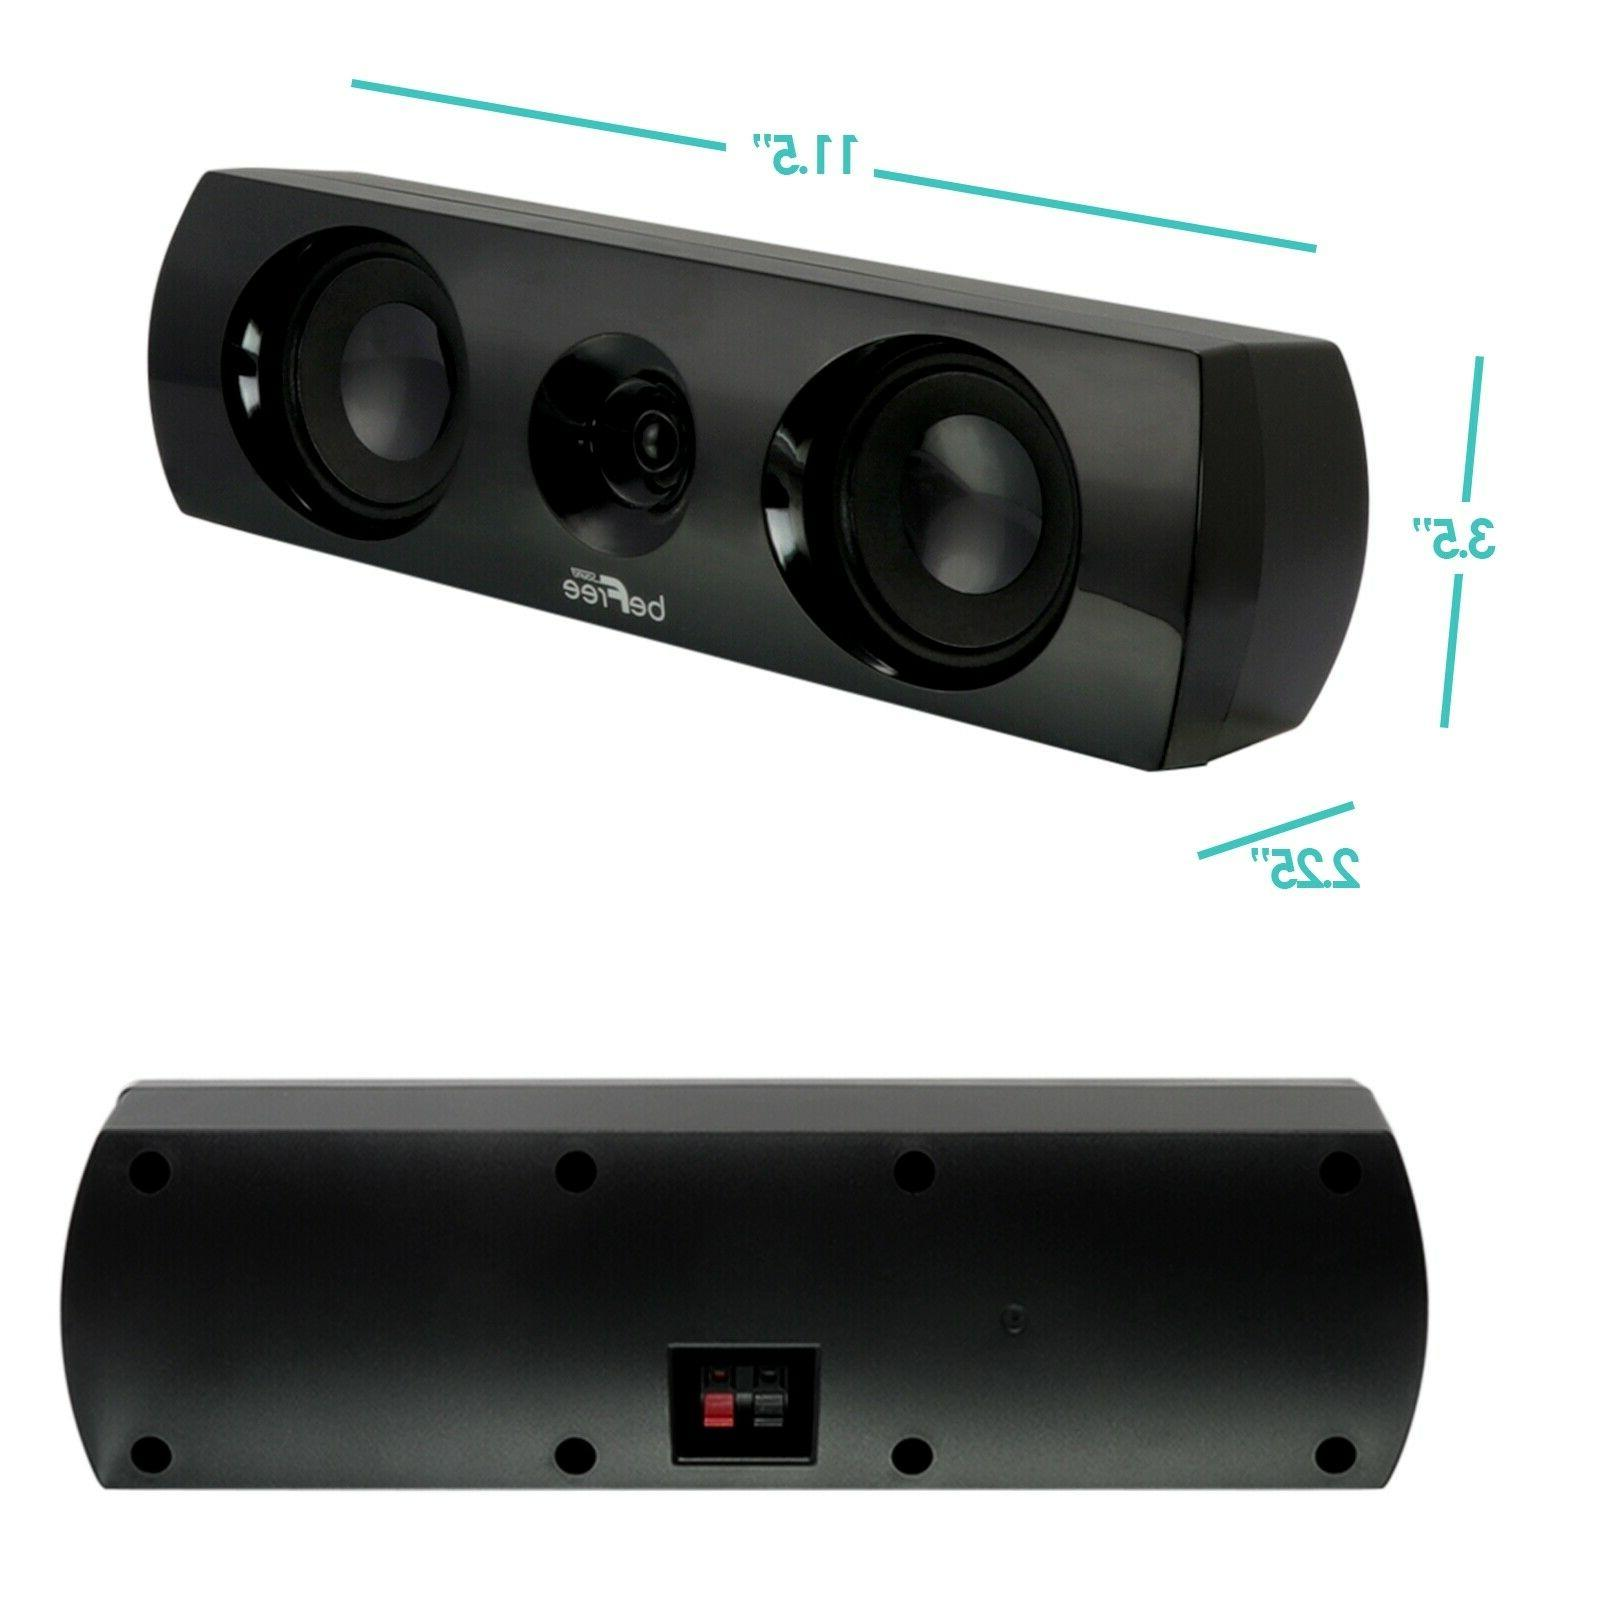 NEW SURROUND THEATER SYSTEM STREAMING